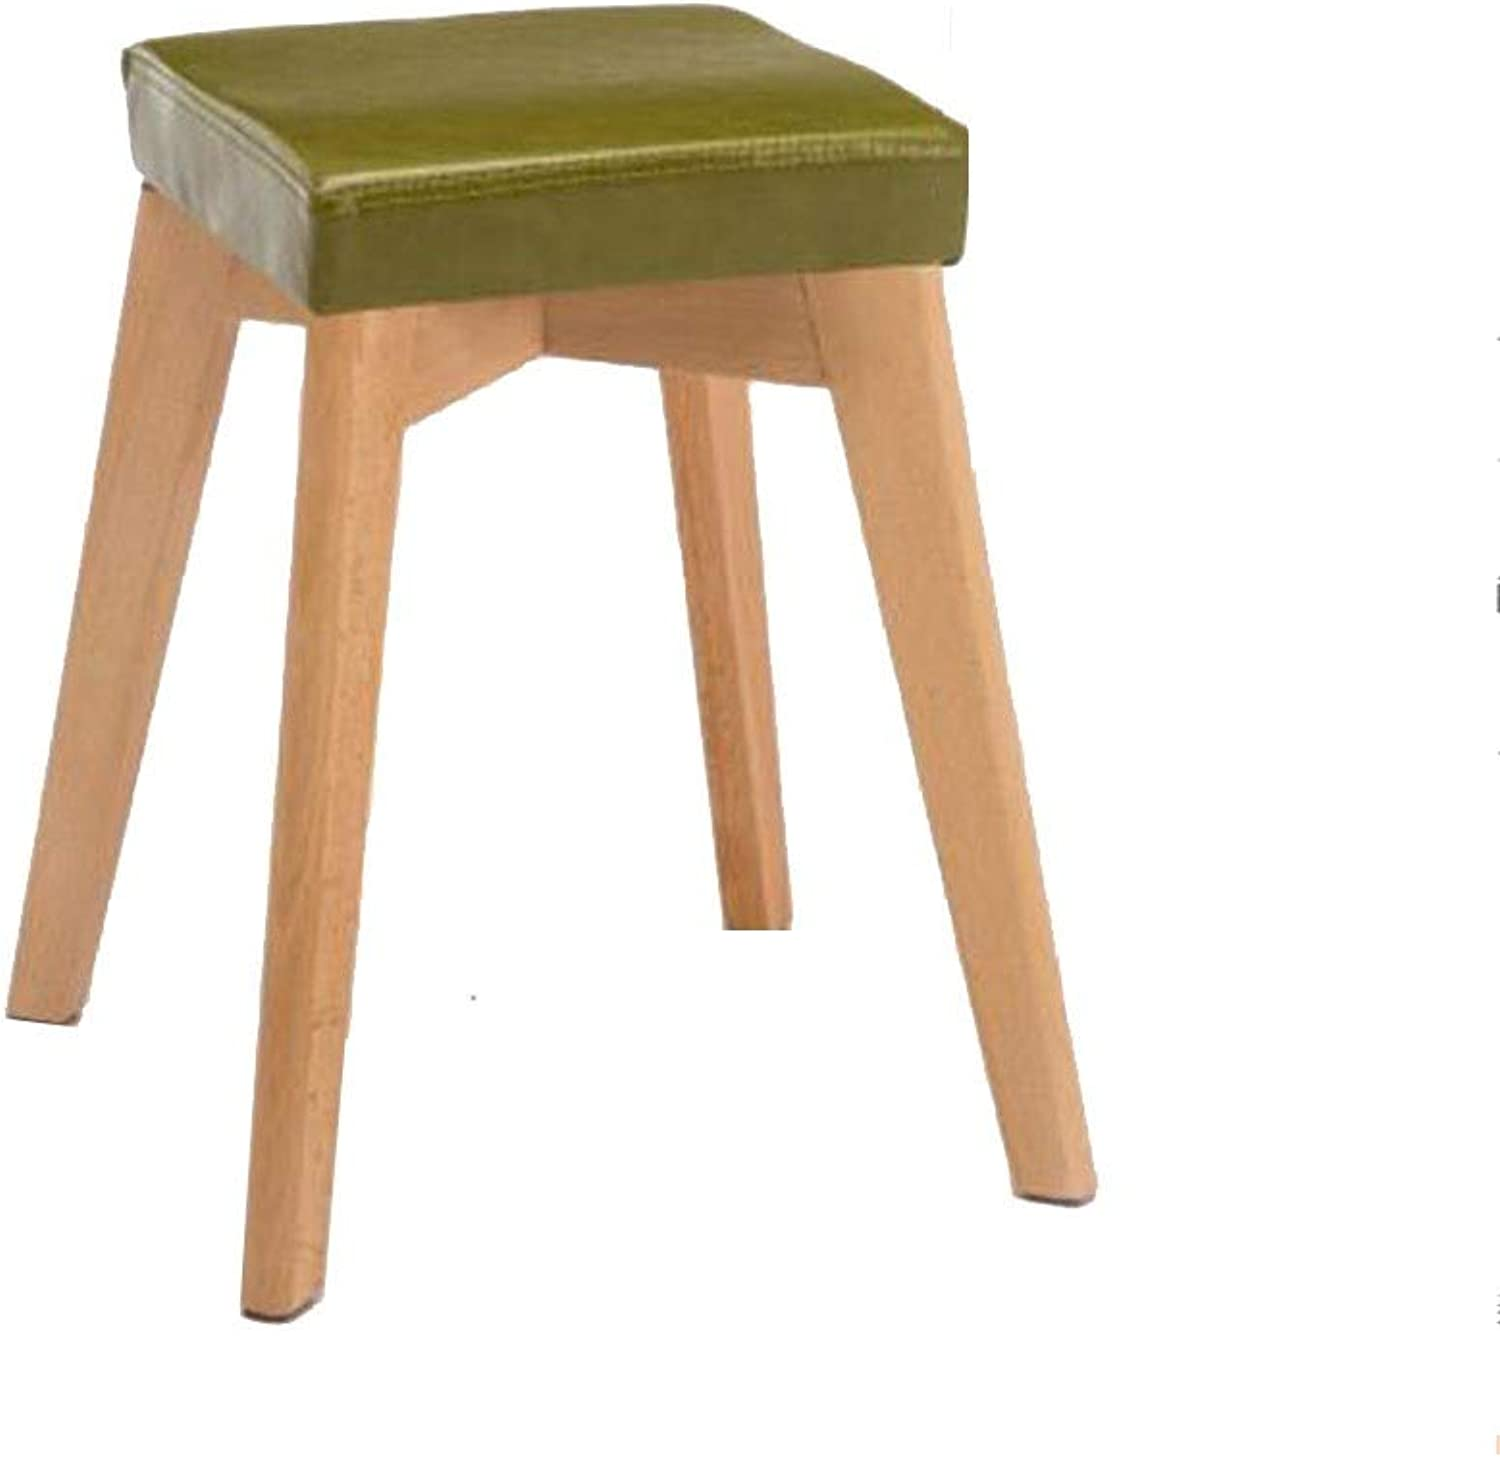 QIQI-LIFE Wood Stool Stackable Small Wooden 4 Legs Square Dining Stool,Faux Leather Padded,45x31x31cm (color   Green, Size   Wood color Legs)